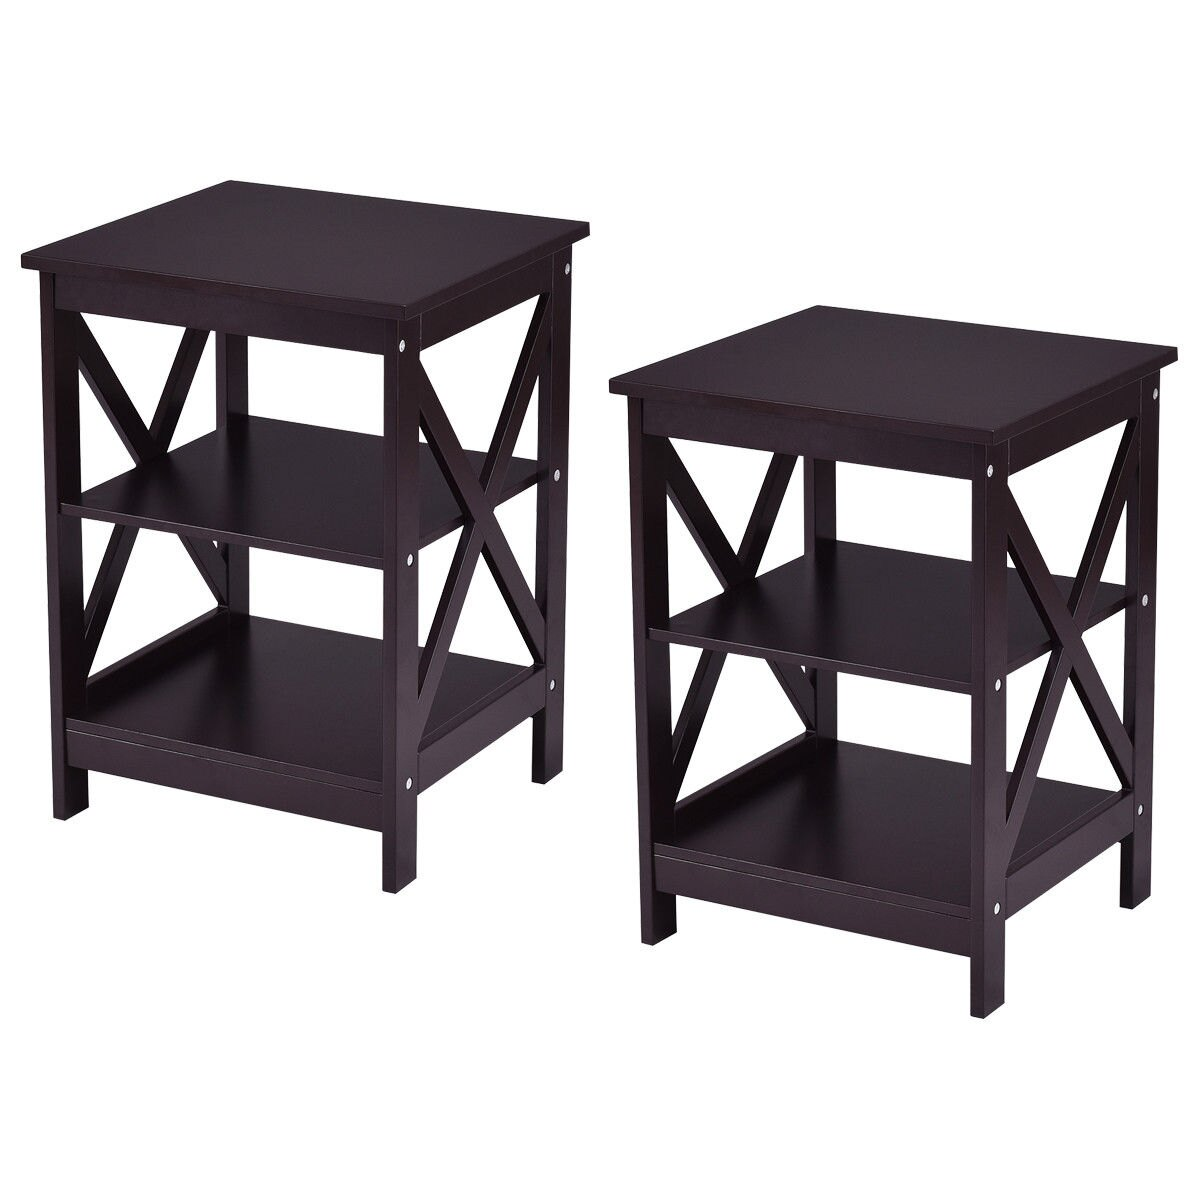 Costway | Rakuten: Costway 2PC 3-Tier Nightstand End Table Storage ...